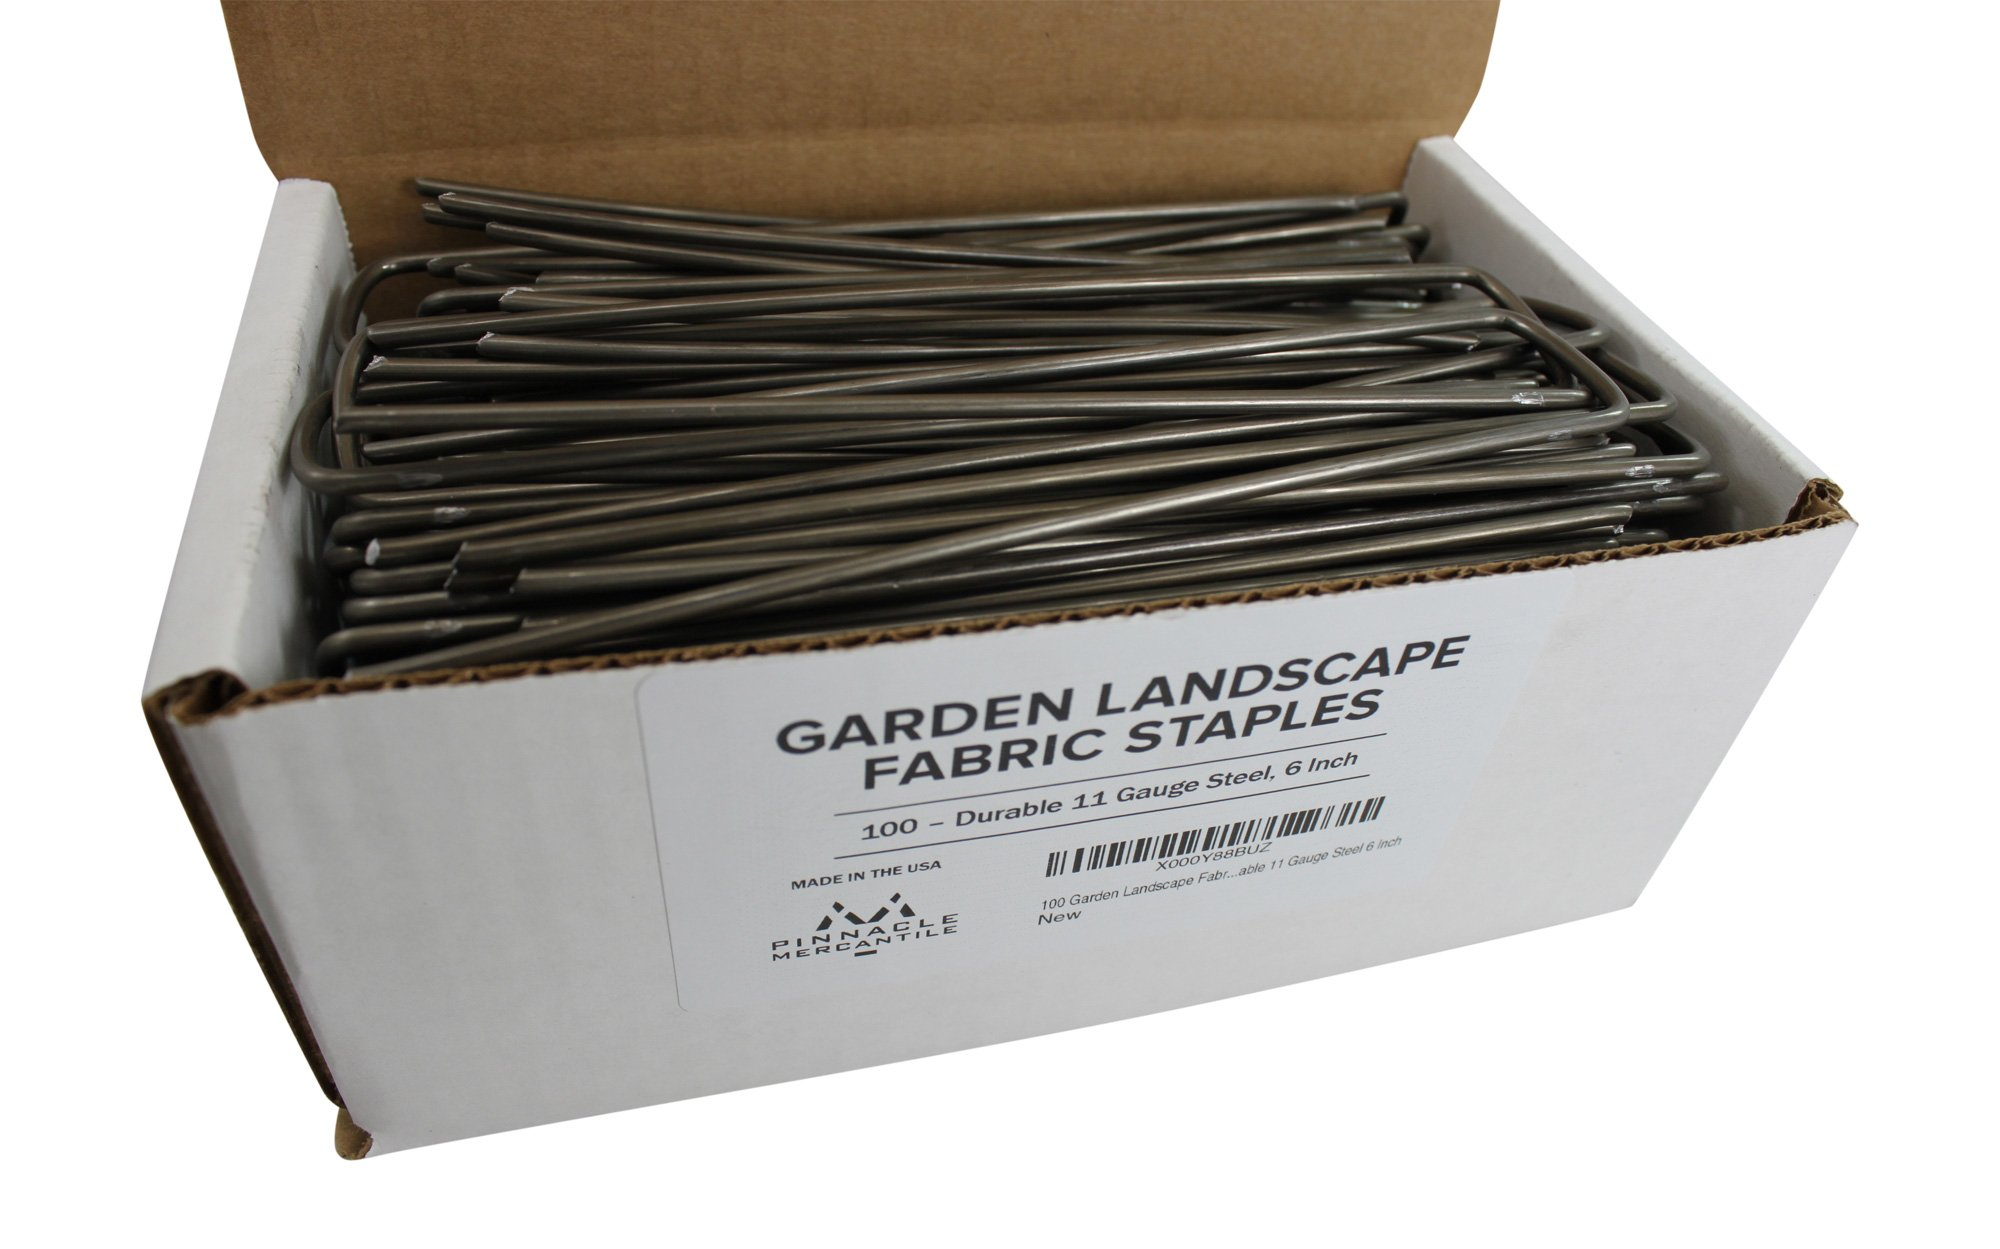 Pinnacle Mercantile 100 Garden Landscape Staples Fabric Anchor Stakes Strong 11 Gauge Steel 6 Inch Made In USA by Pinnacle Mercantile